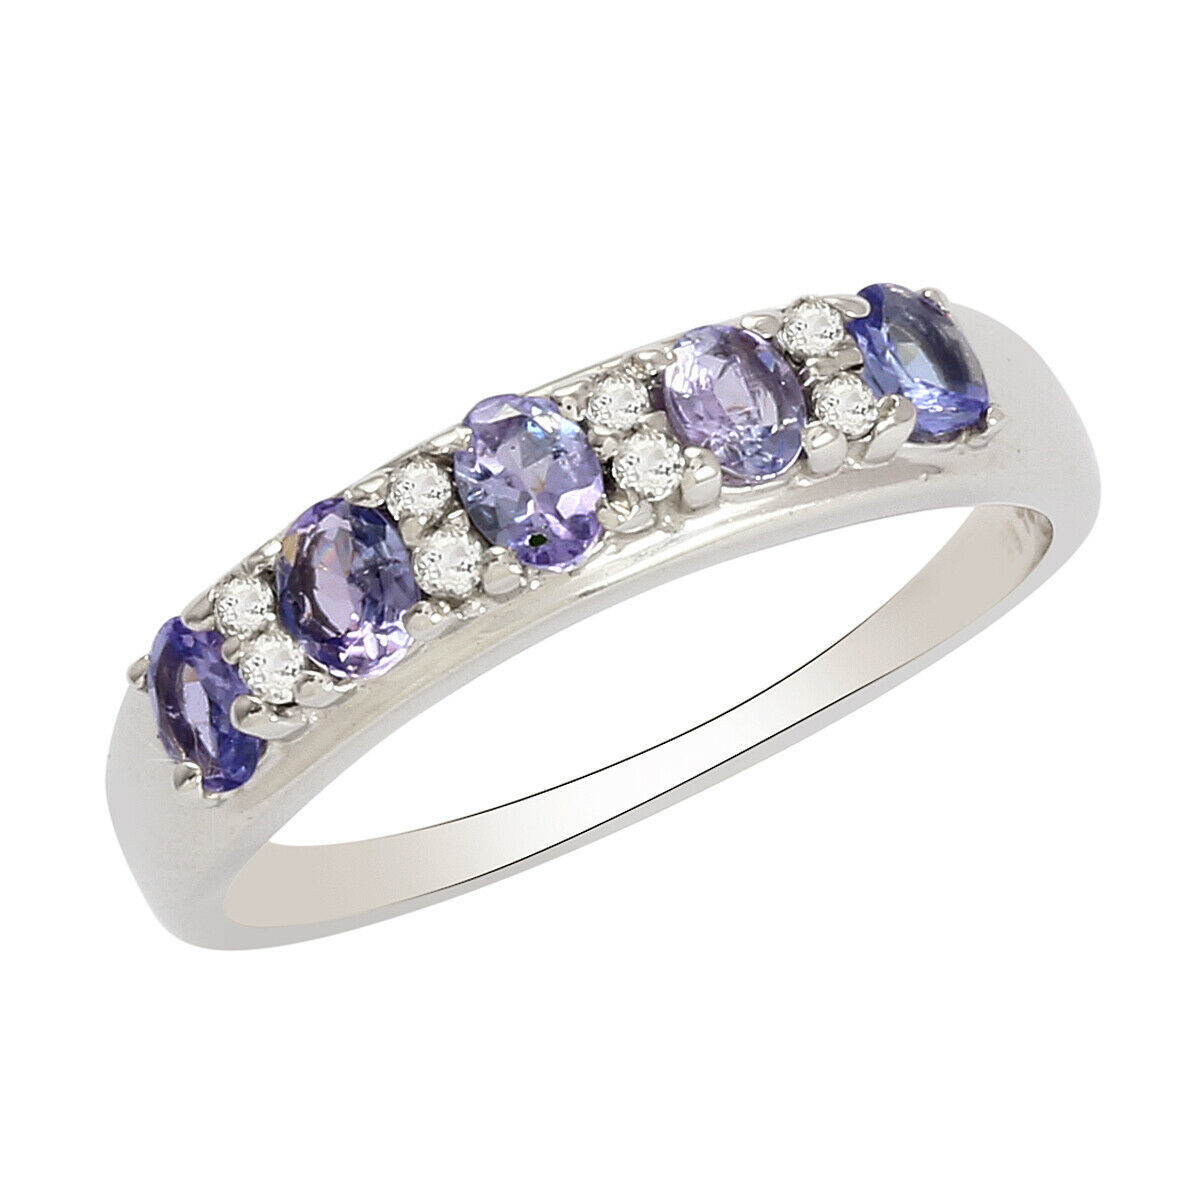 Primary image for 925 Fine Silver 1.24 Ct Oval Cut Tanzanite Gemstone Eternity Women Stacking Ring